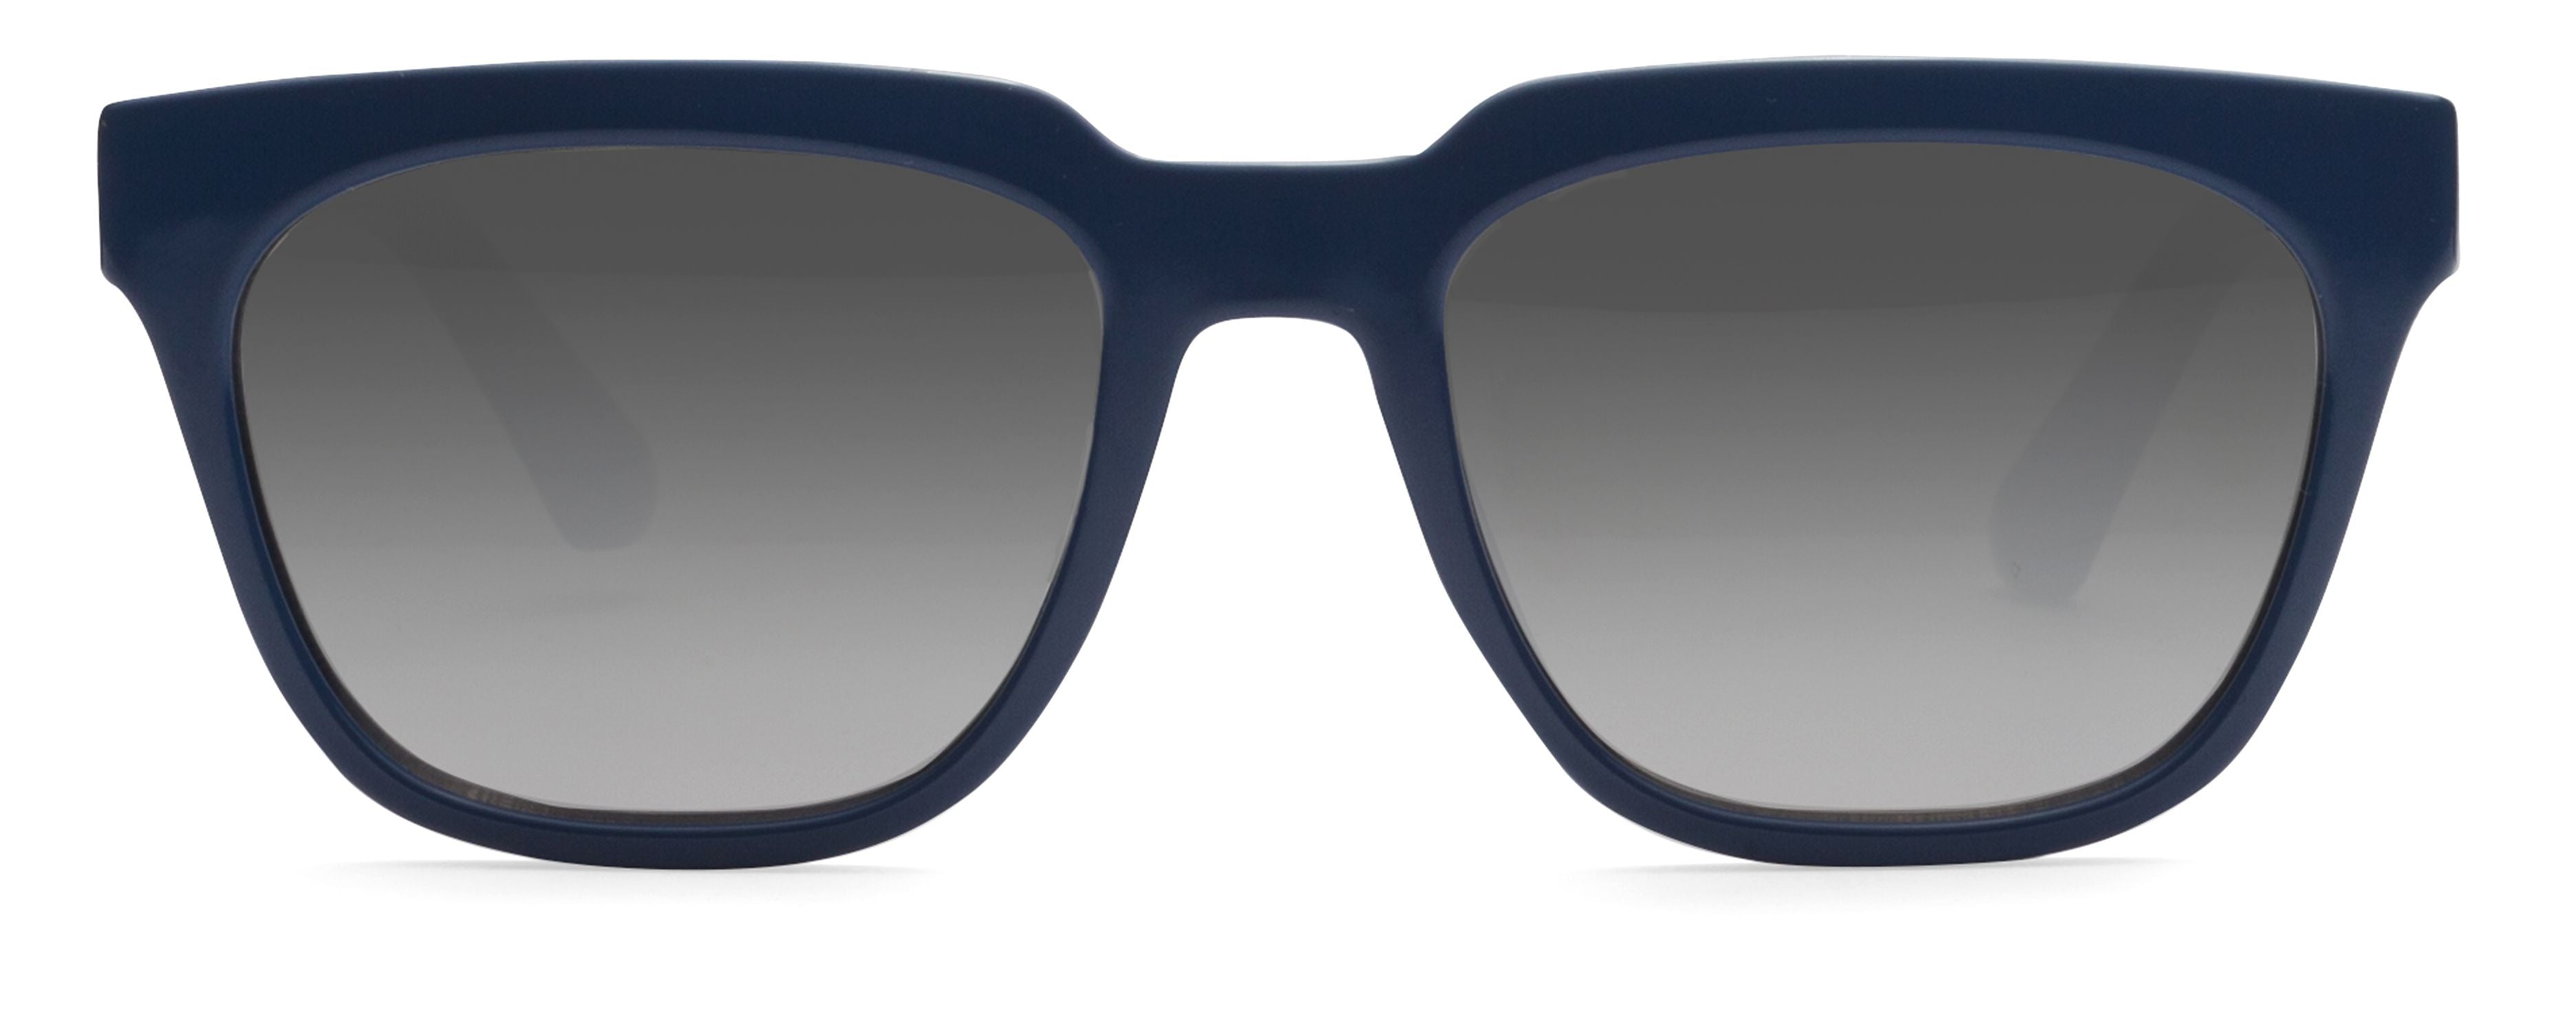 BOOM Kids Sunglasses Blue